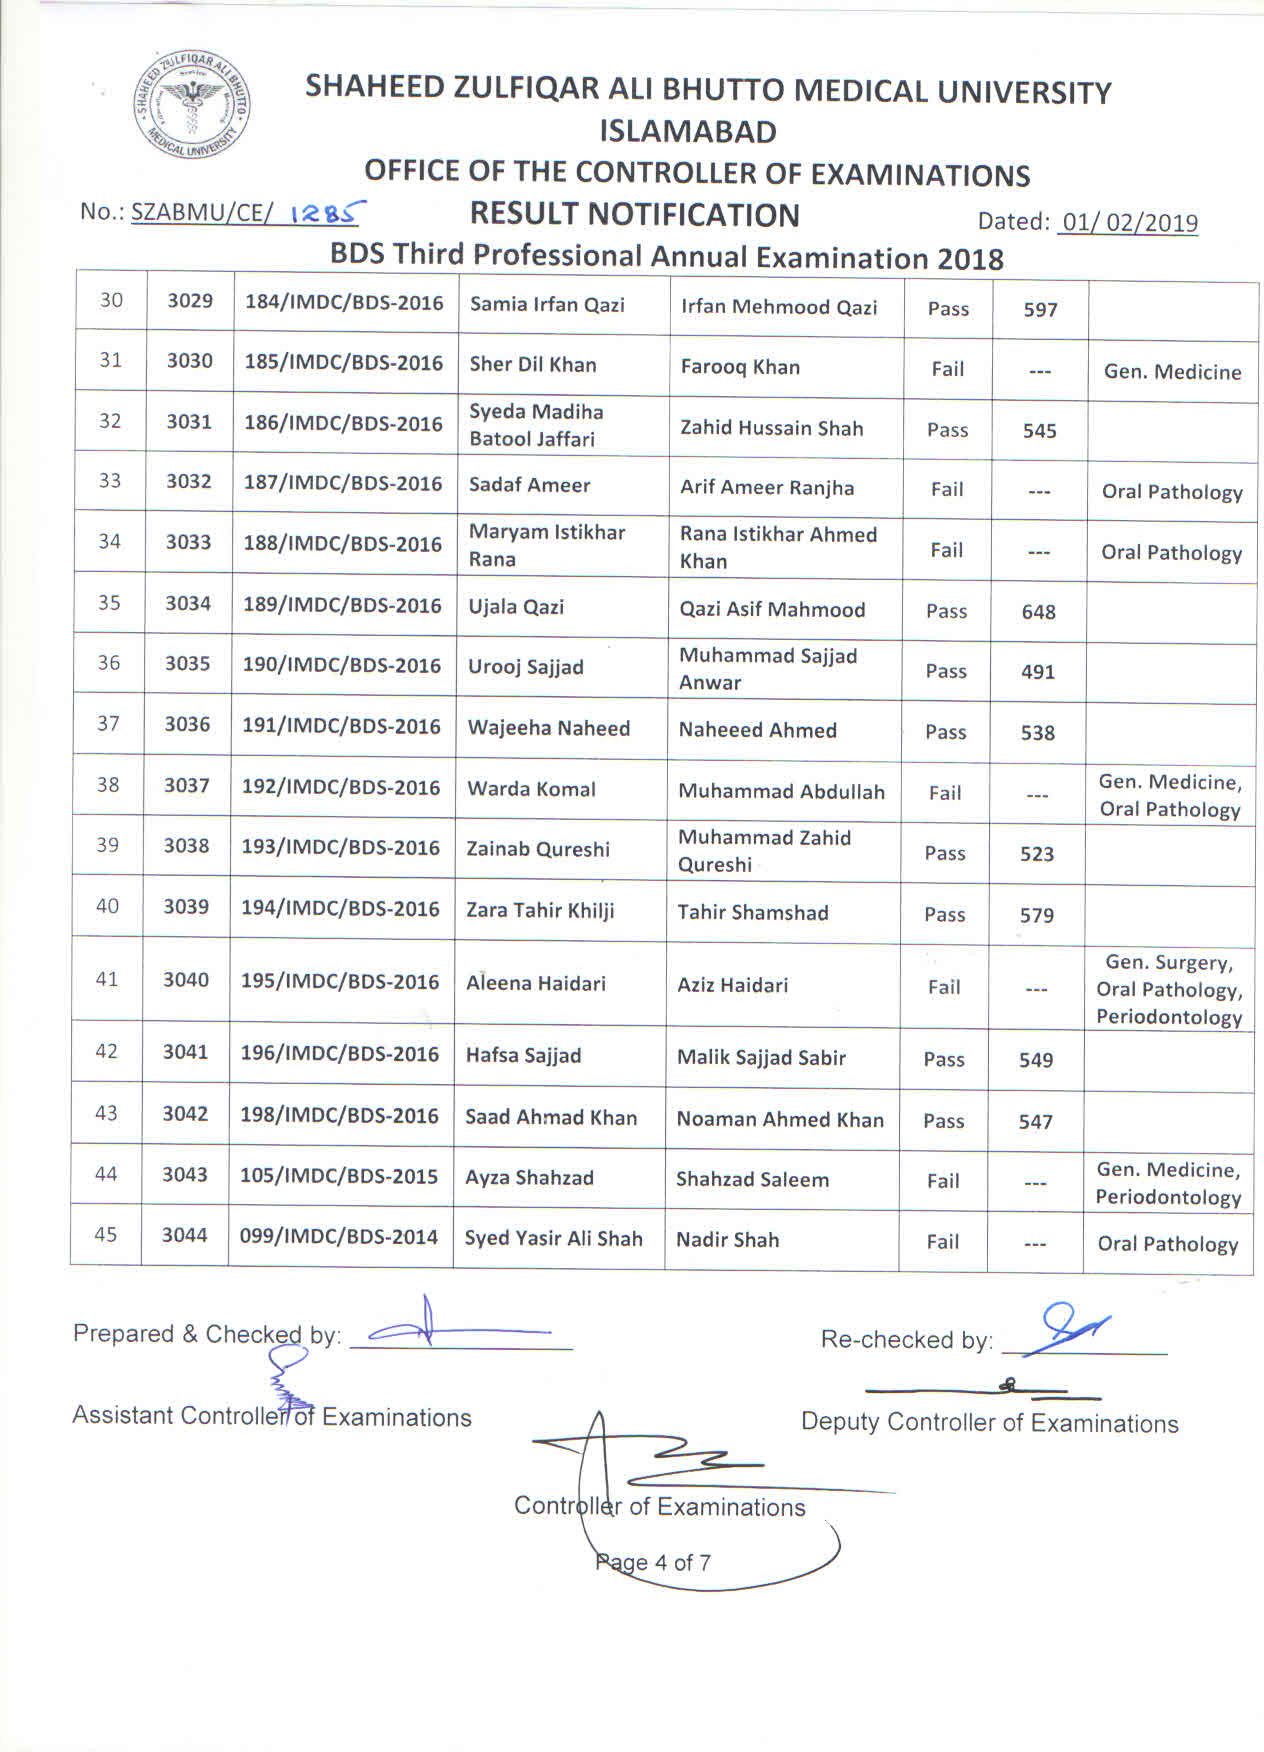 Result Notification - BDS 3rd Professional Annual Examination 2018